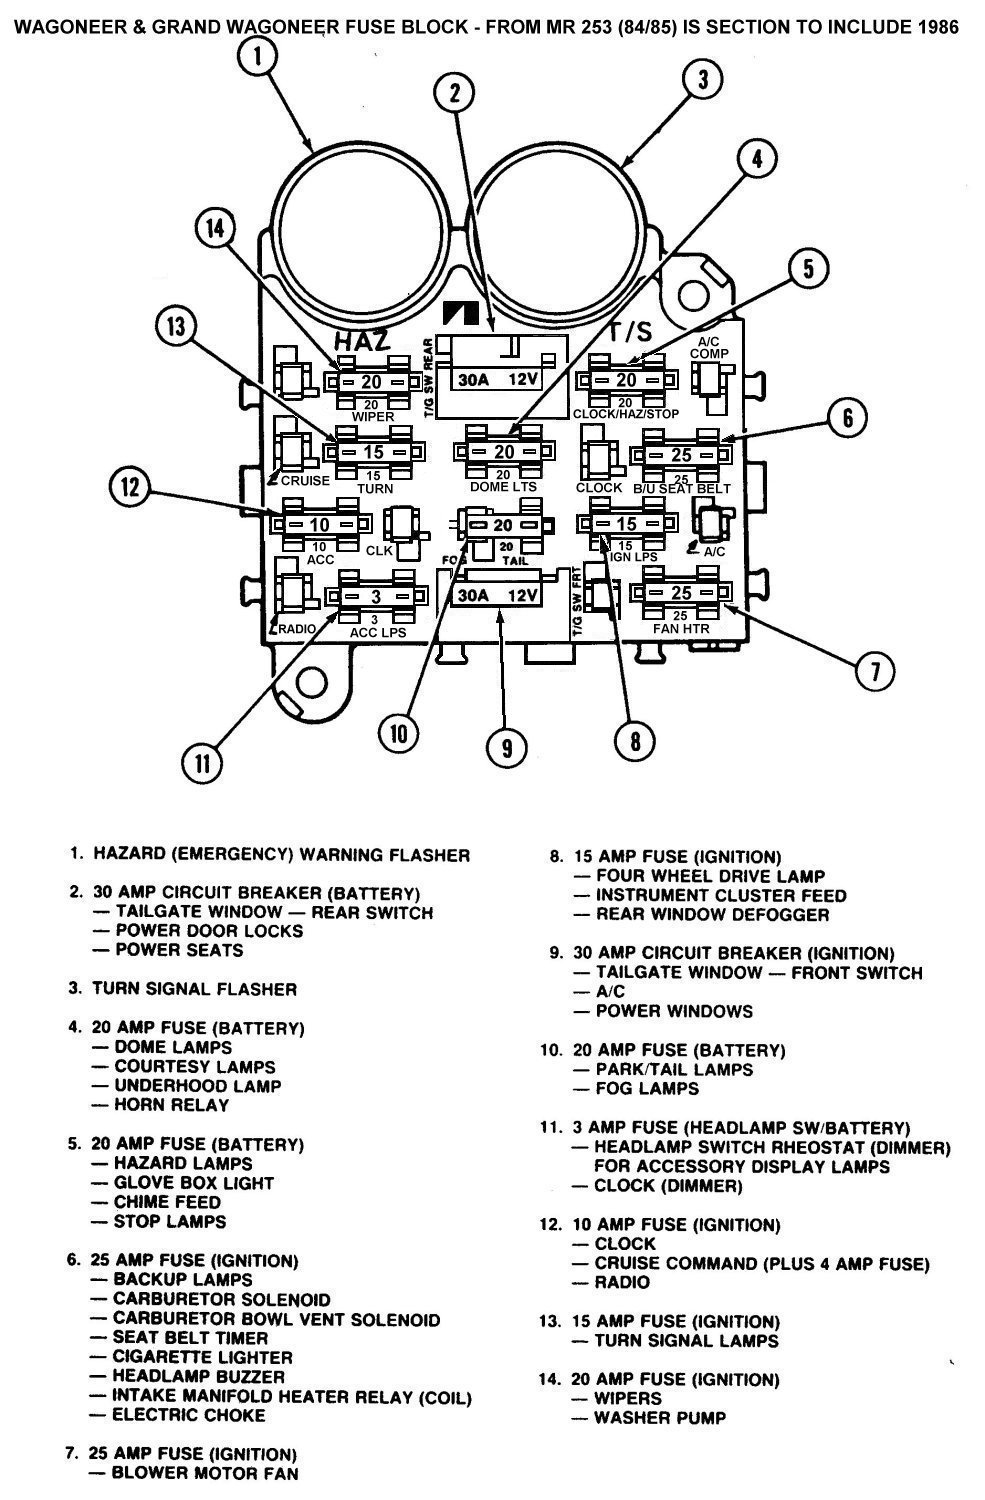 1983 Jeep Cherokee Fuse Box Car Wiring Diagrams Explained Chart What Goes Where Page 3 Tom Oljeep Collins Fsj Rh Com 1996 Grand Diagram